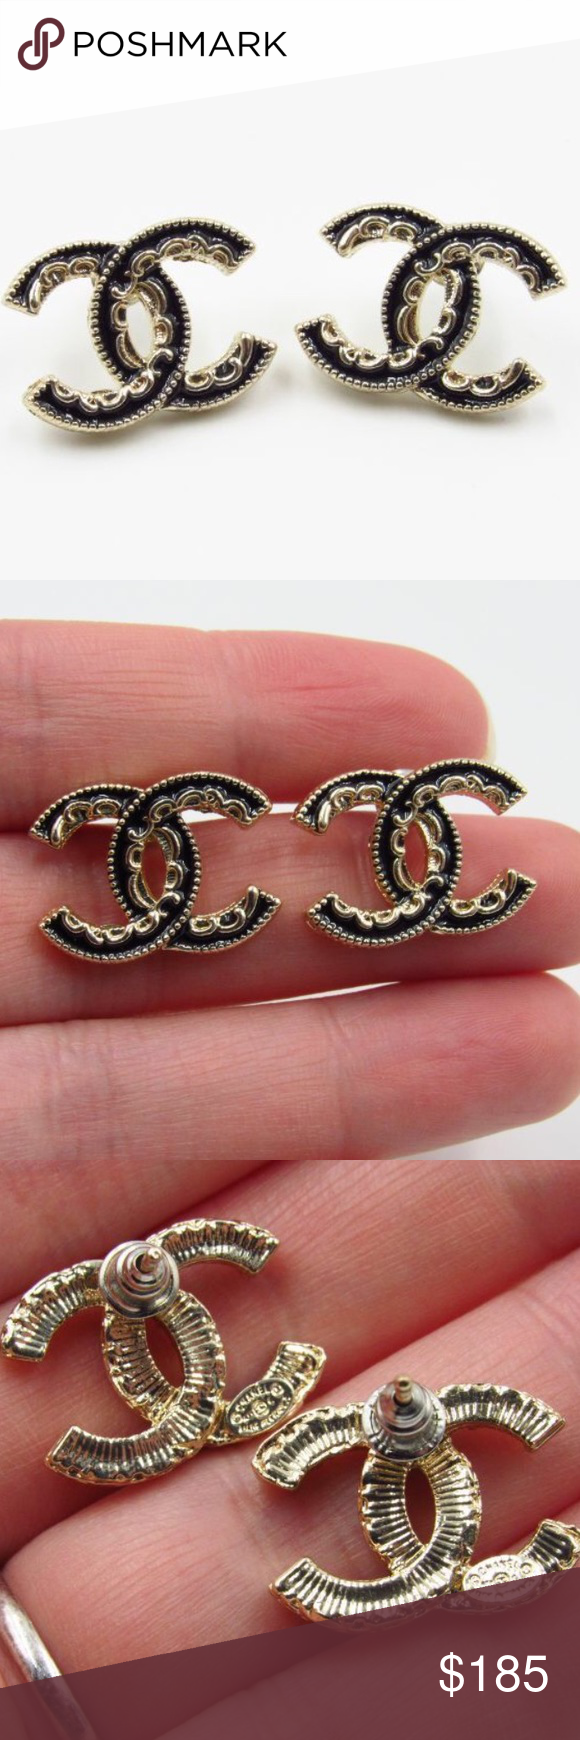 Chanel Black & Gold Earrings Gorgeous! Like new condition 😍 Stamped backs 👌🏼 Lace-like detail. Comes with generic dust bag 😊 Priced firmly to sell 💕 No trades or low balls please 💕 CHANEL Jewelry Earrings